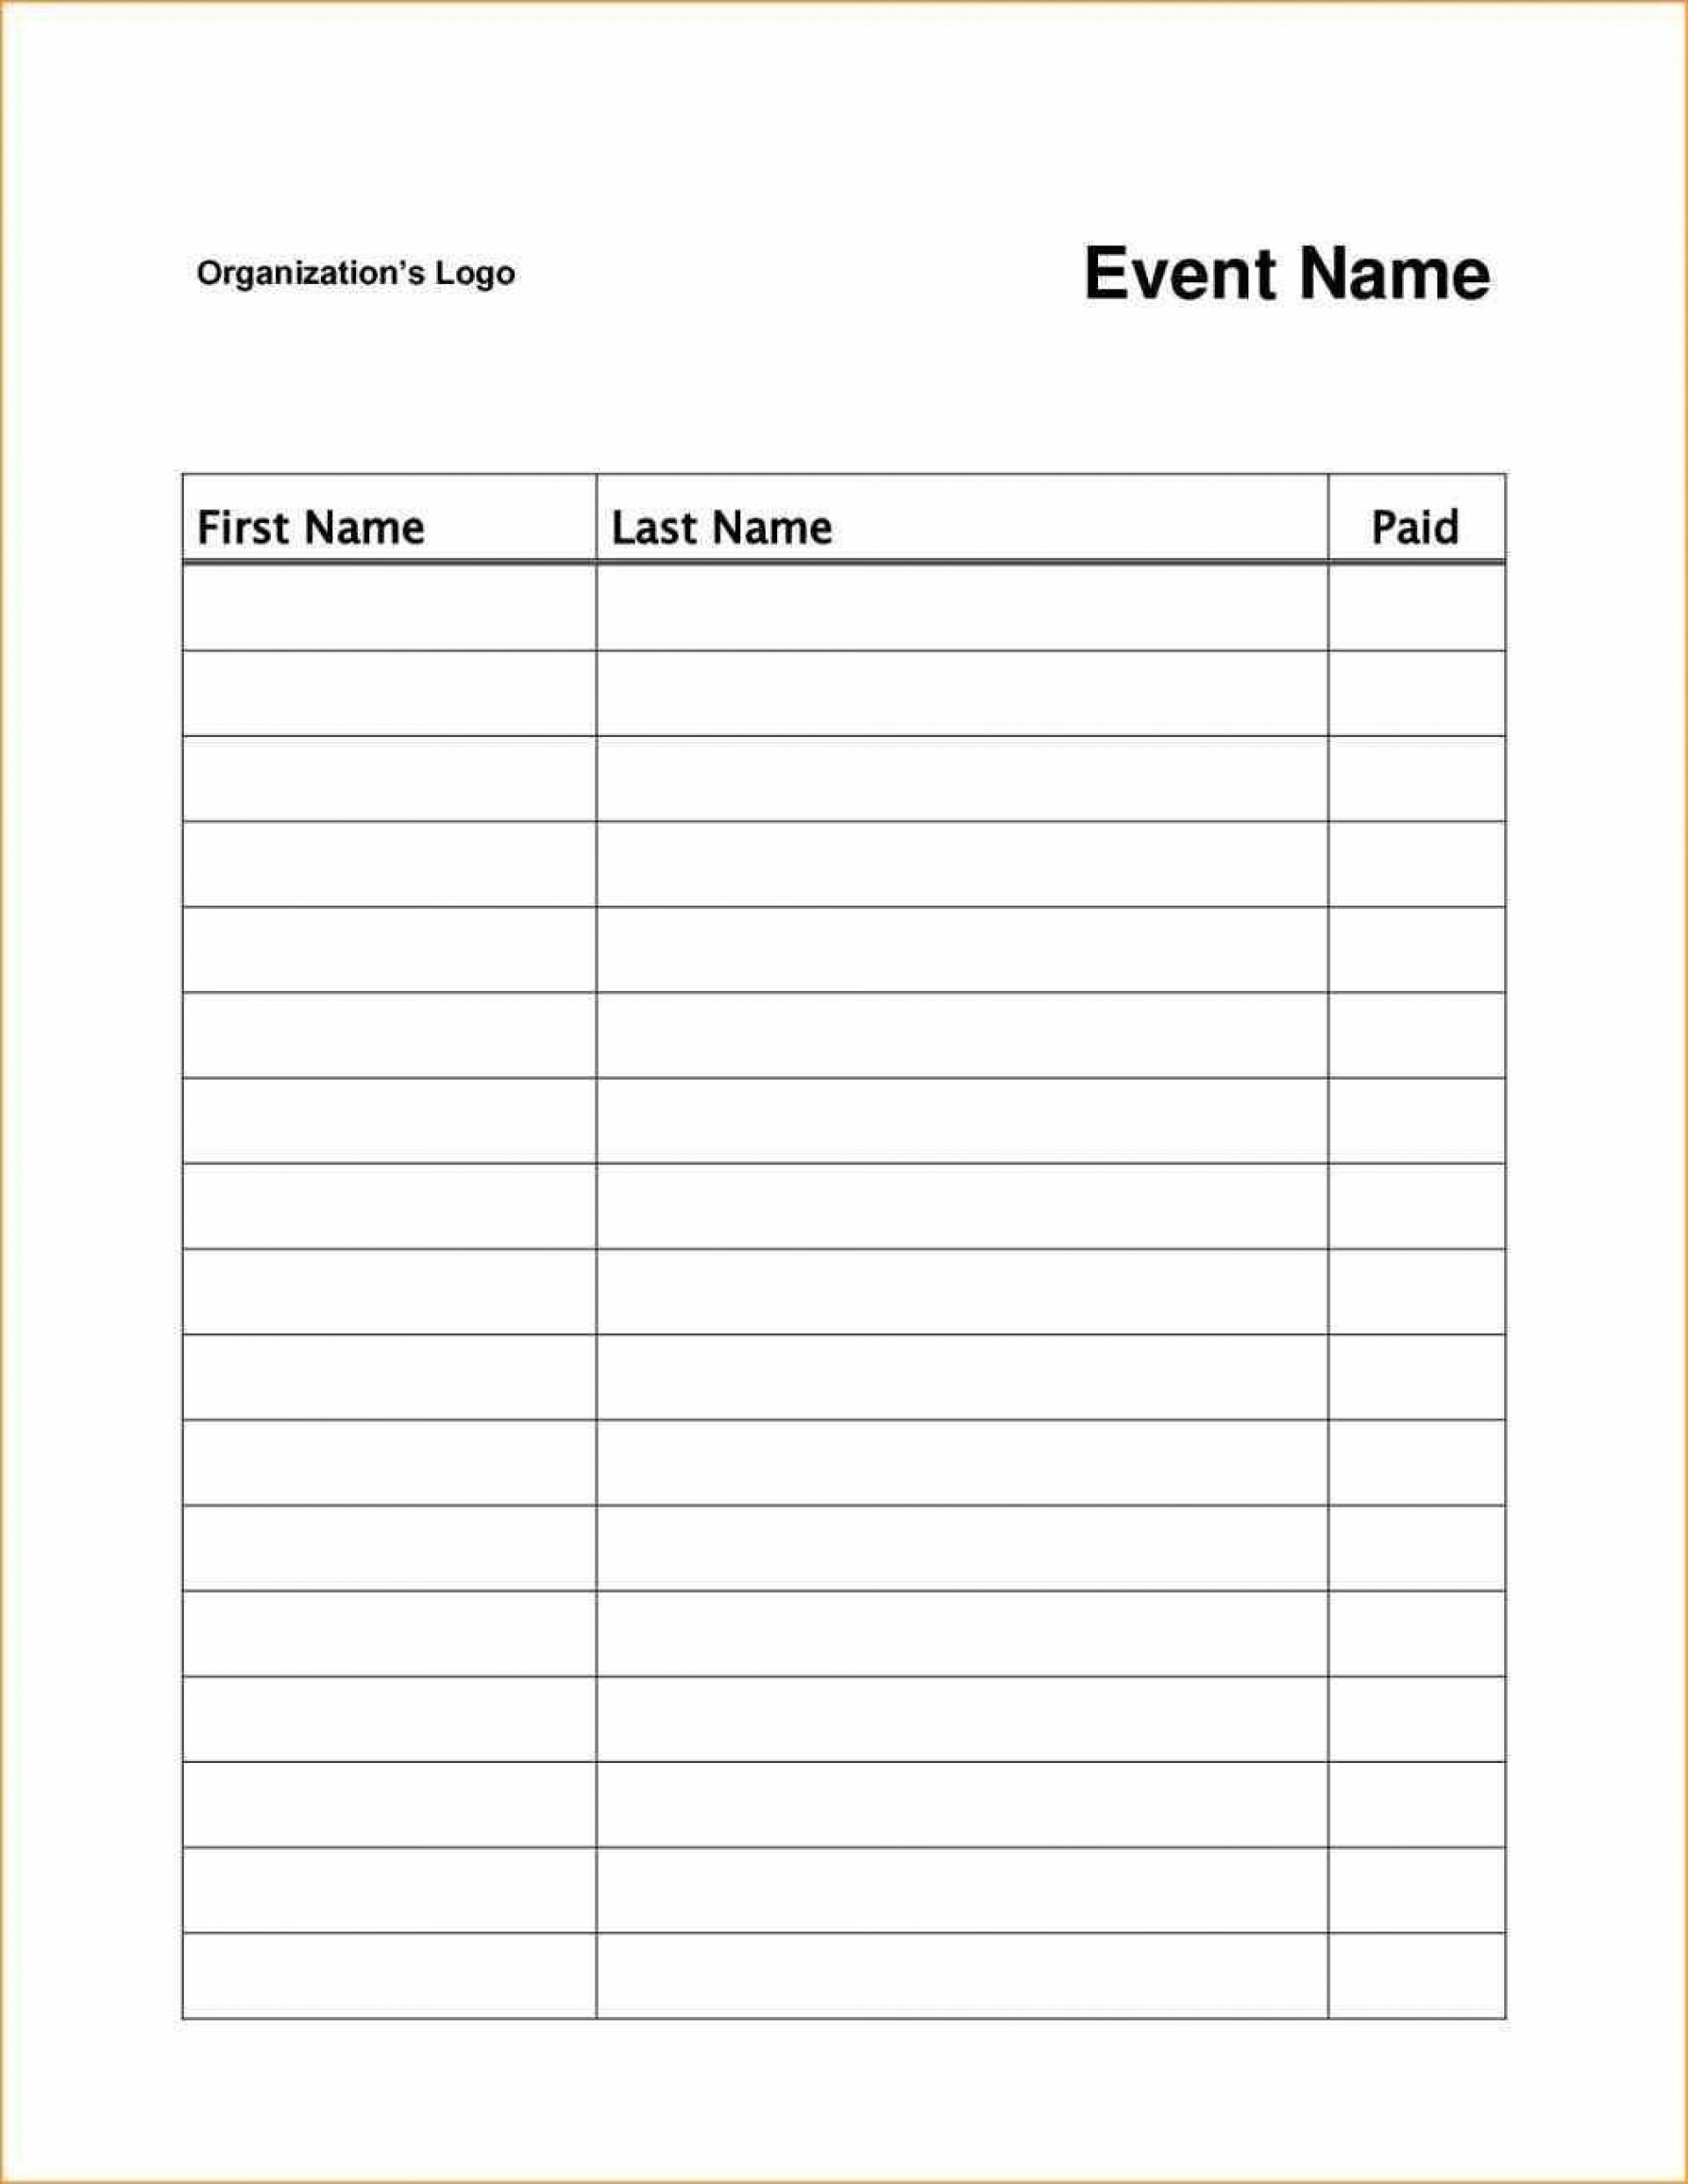 006 Breathtaking Free Signup Sheet Template Concept  Sign Up For Potluck Google Doc Volunteer In1920